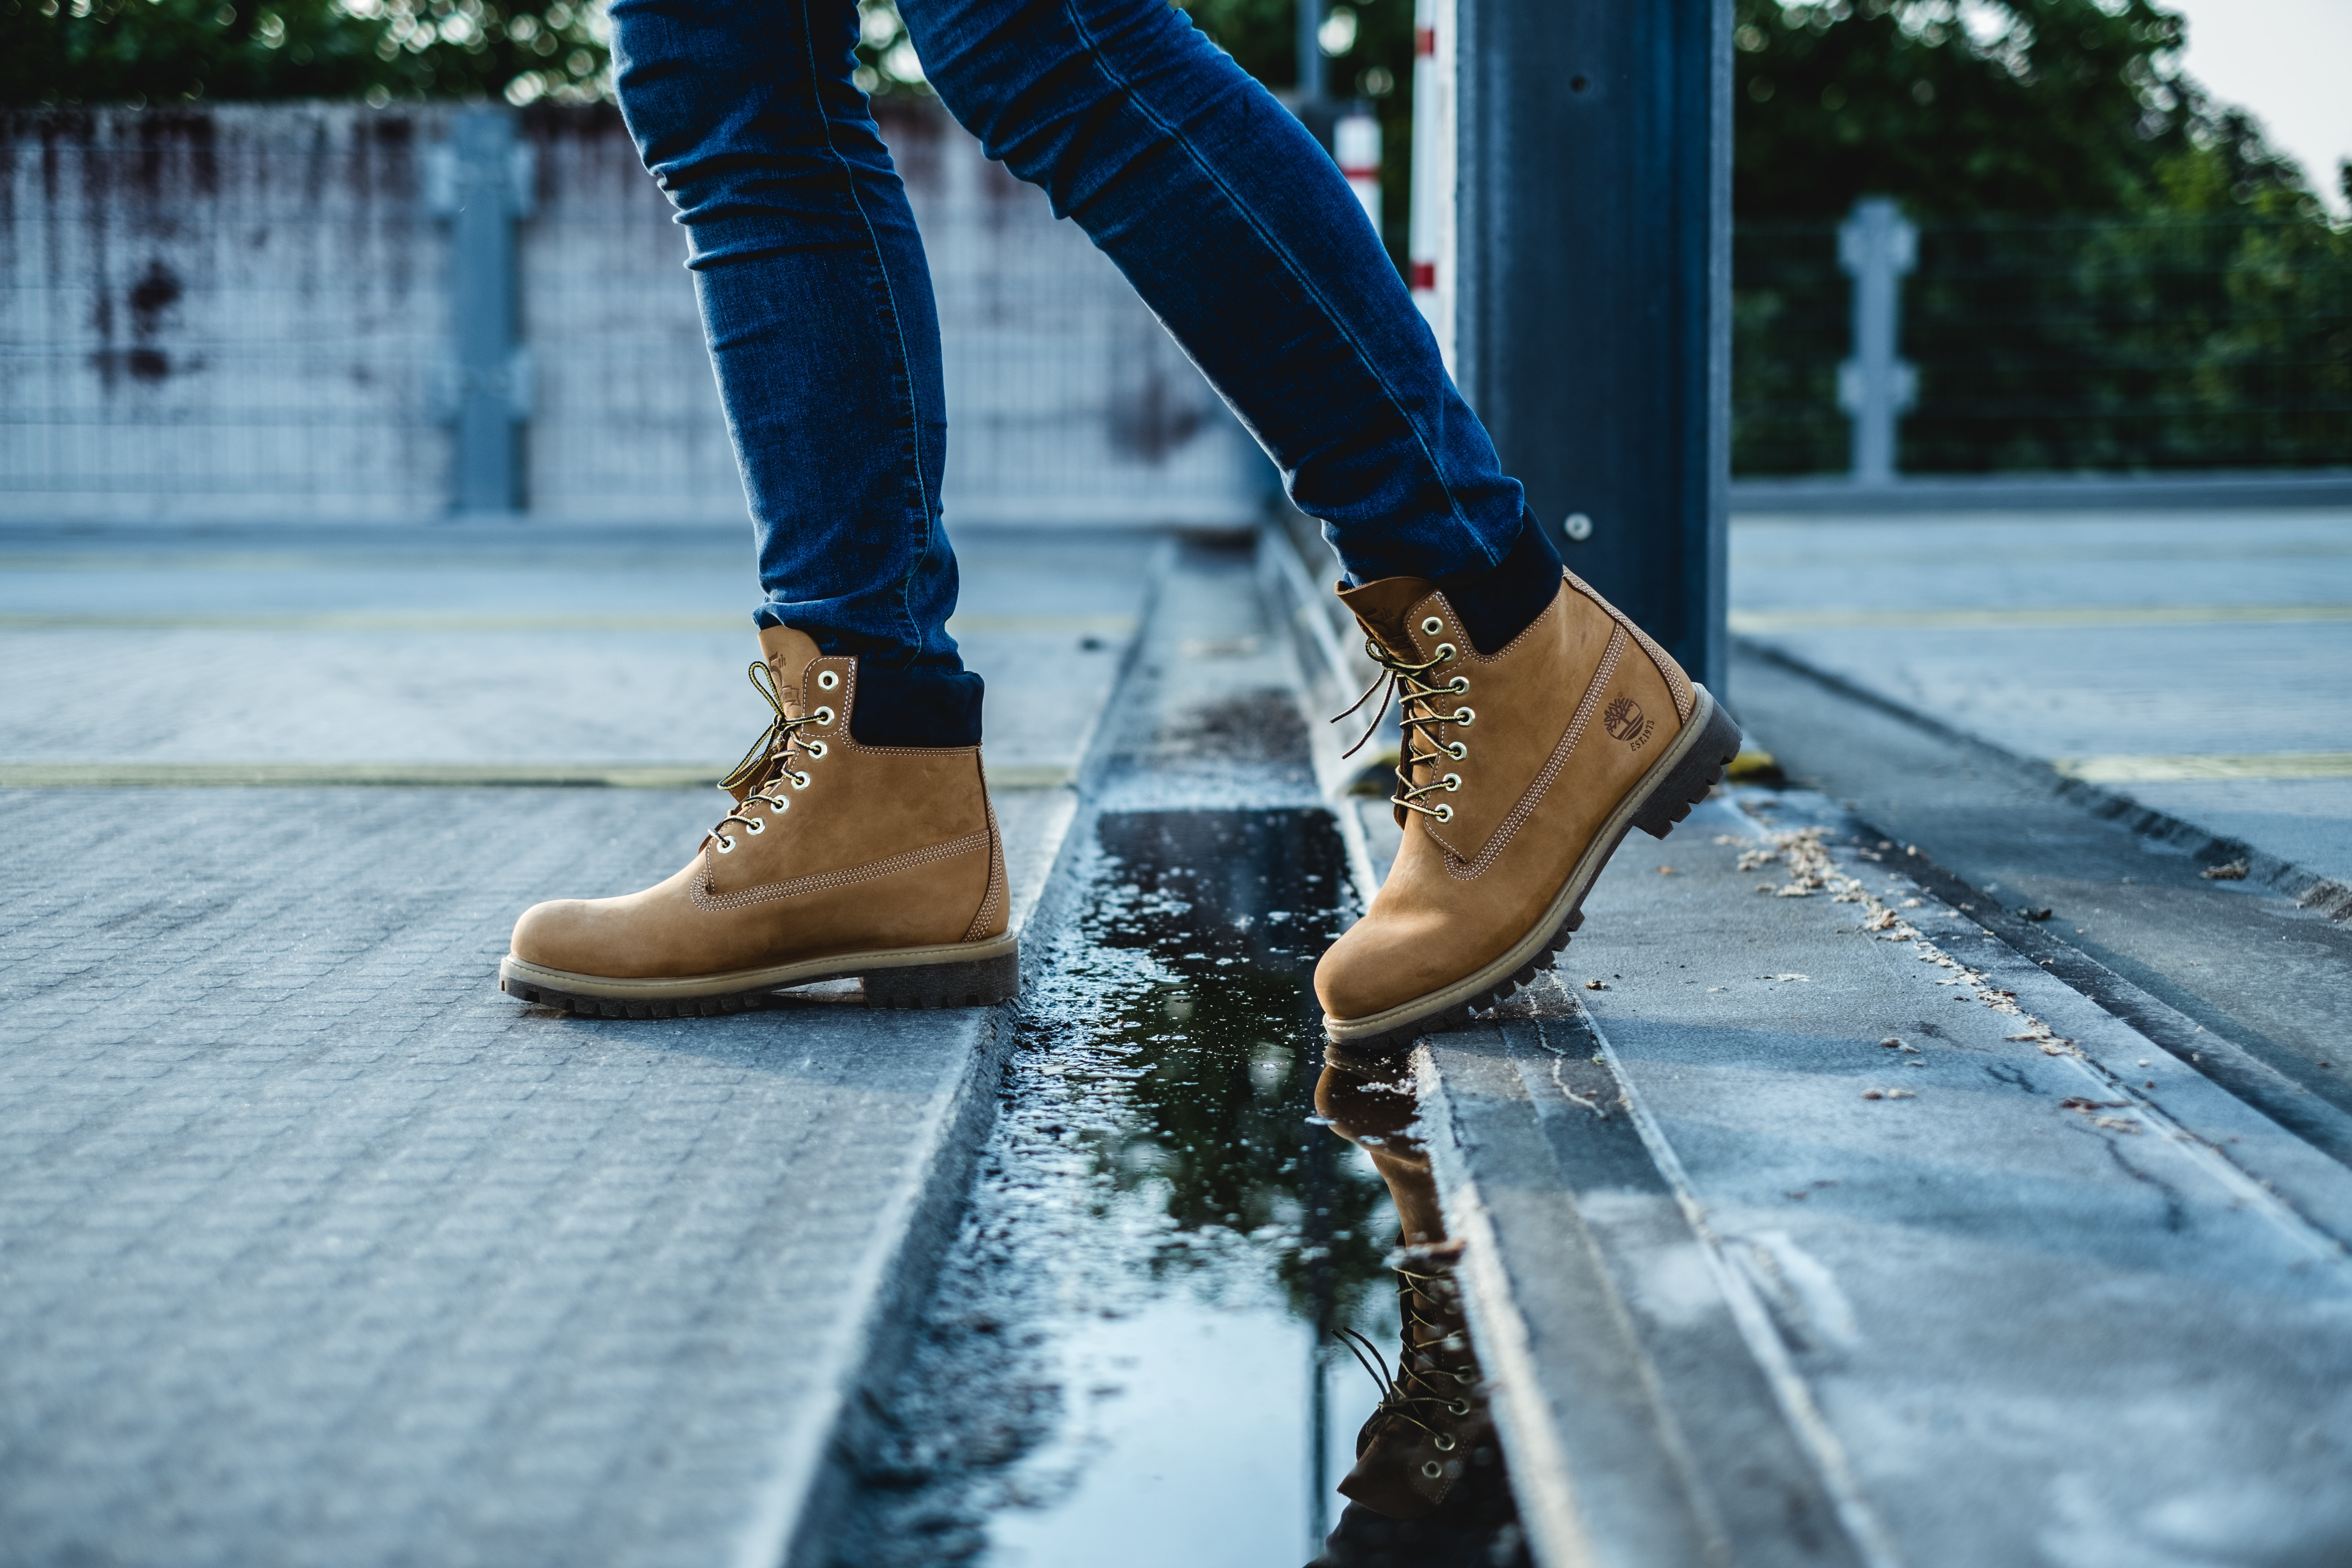 A person walks in the street wearing Timberland boots